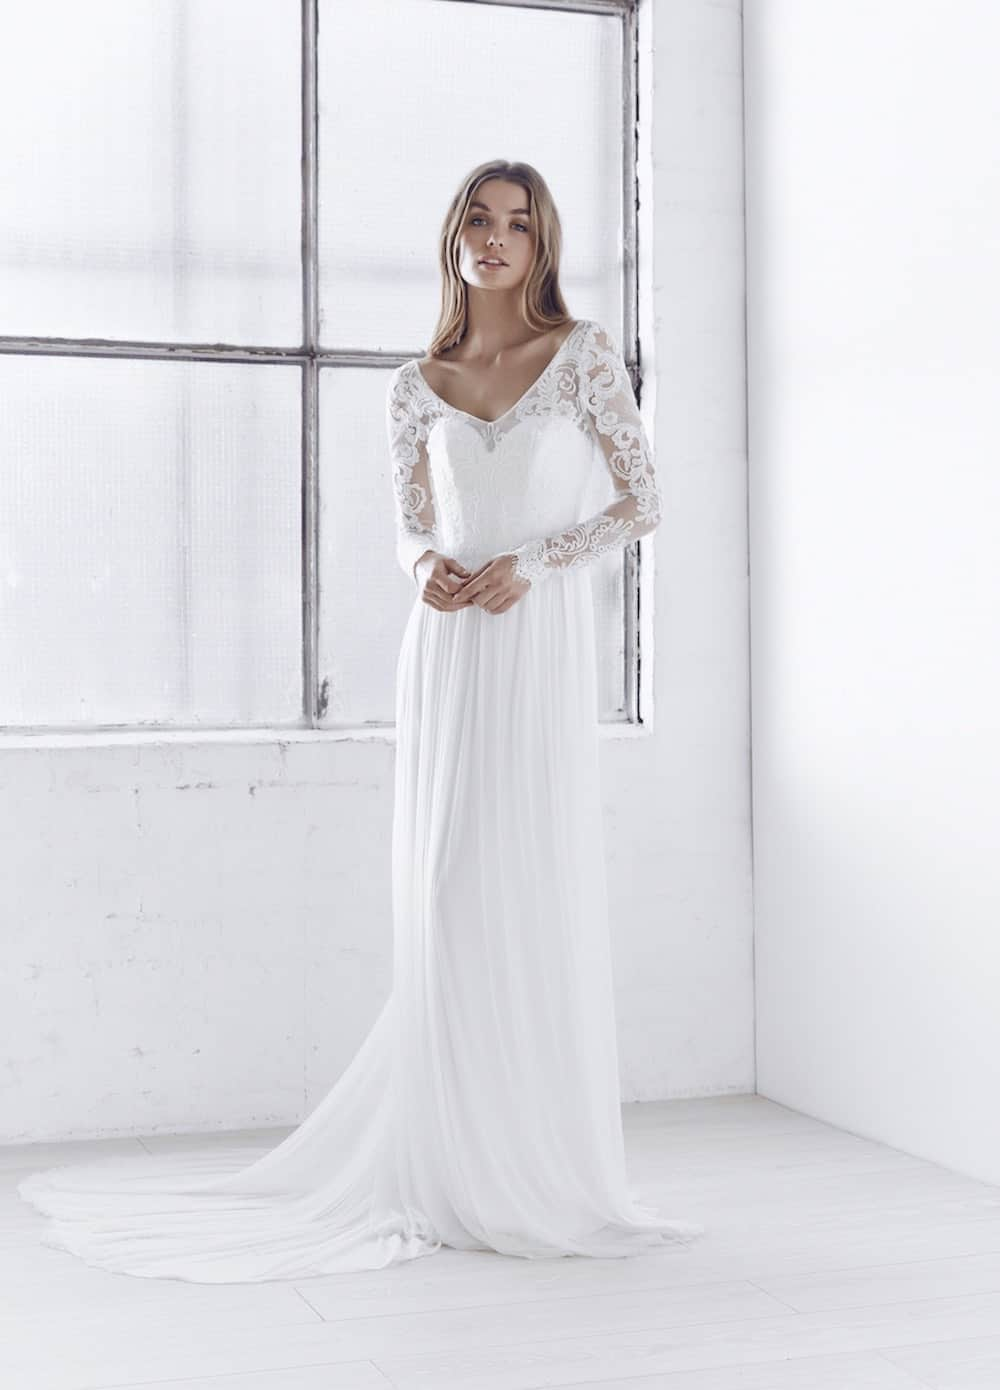 9b9d5182a755 ... India silk tulle wedding dress with long sleeves by Anna Campbell